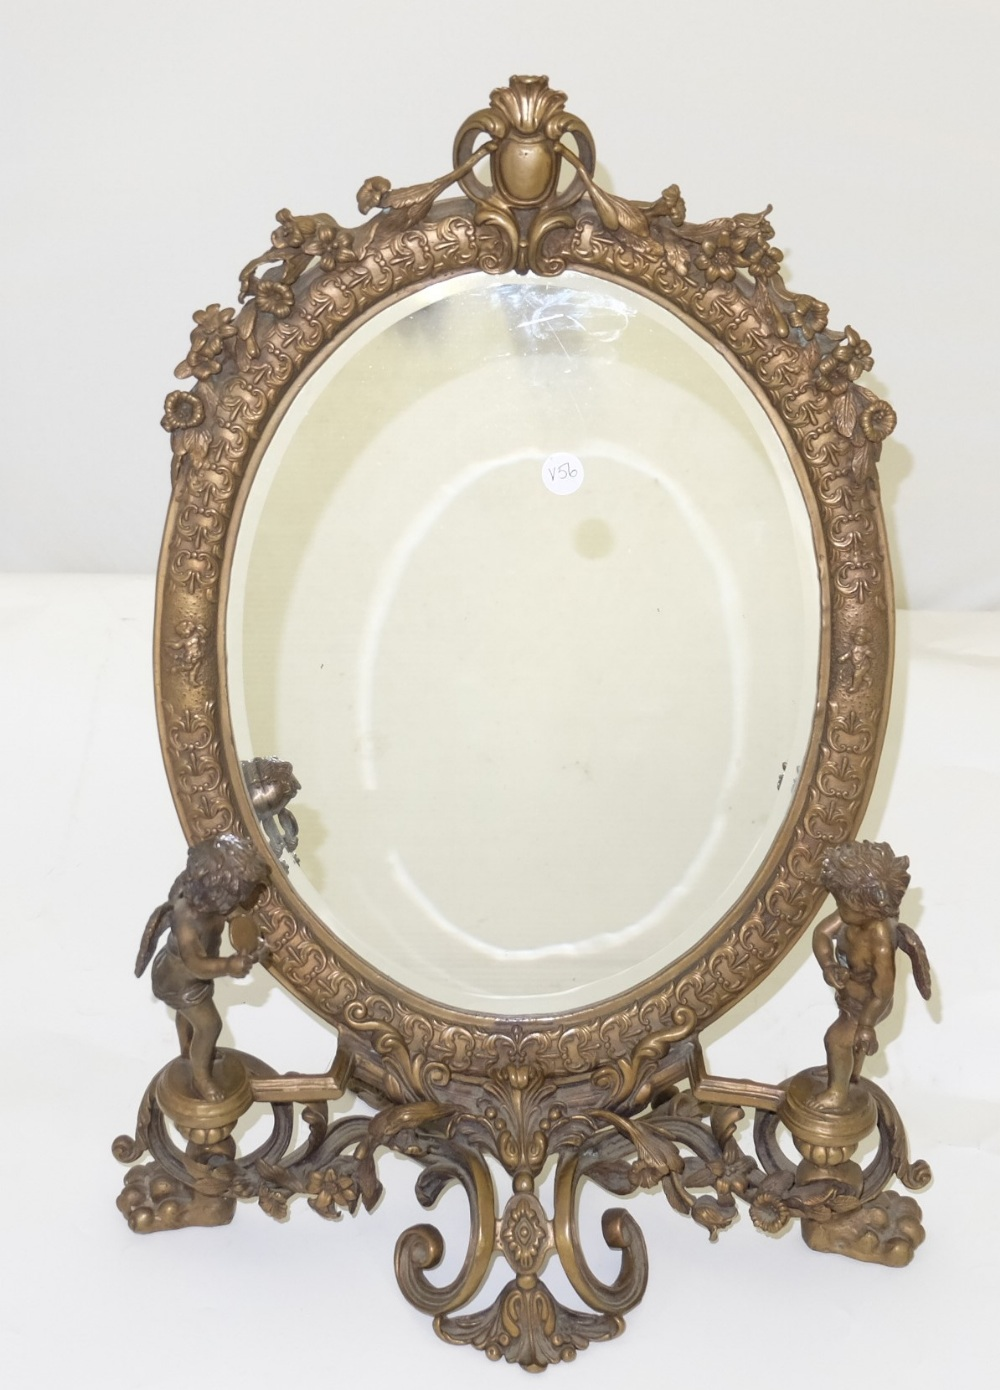 Lot 36 - Mid 20th C decorative brass table mirror, oval shaped and bevelled with floral mounts, the base